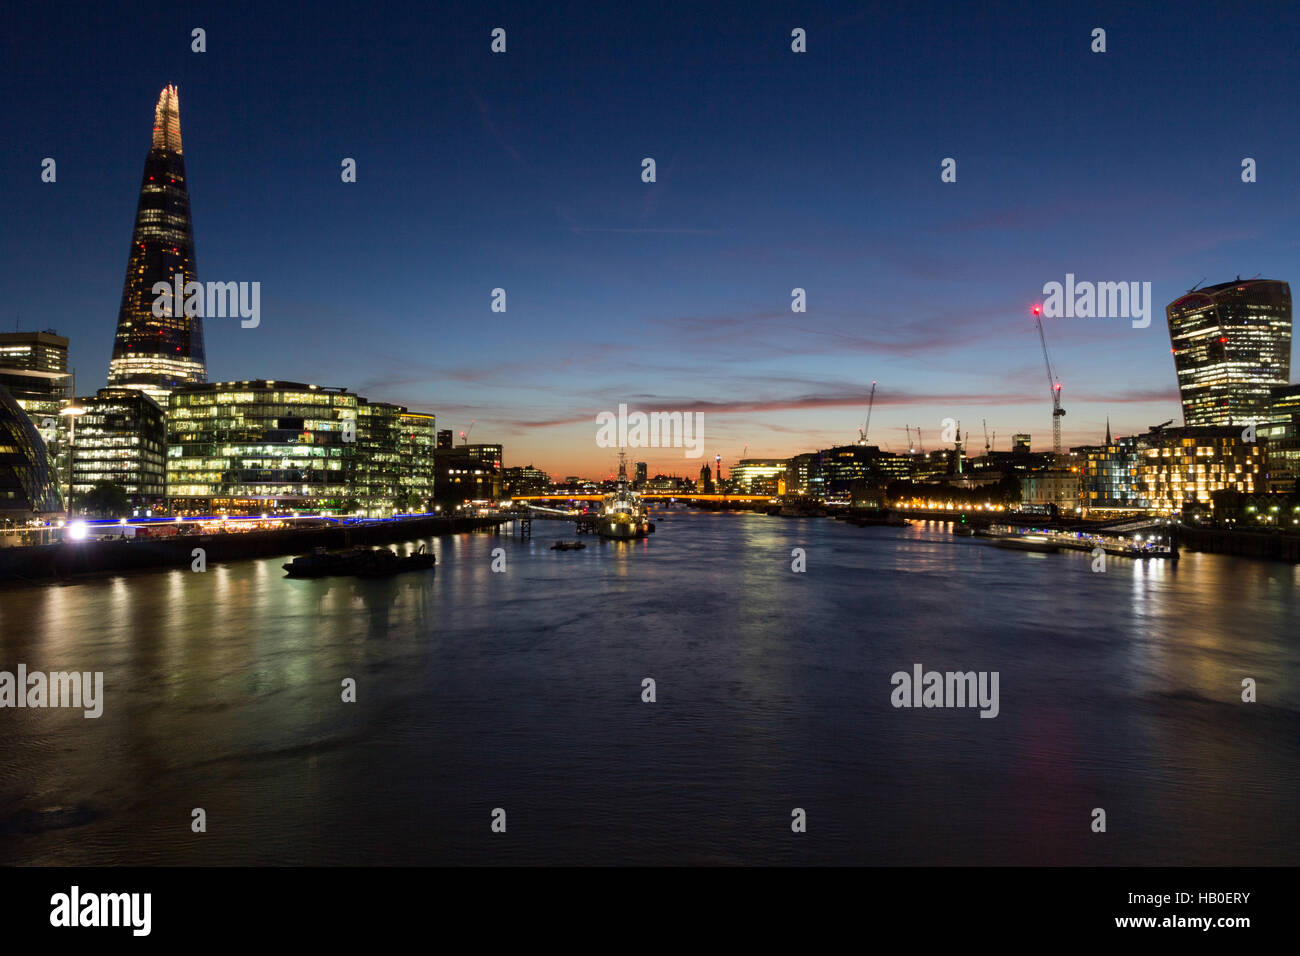 Night London cityscape with River Thames, Walkie Talkie, (20 Fenchurch Street) and the Shard (32 London Bridge Street) - Stock Image